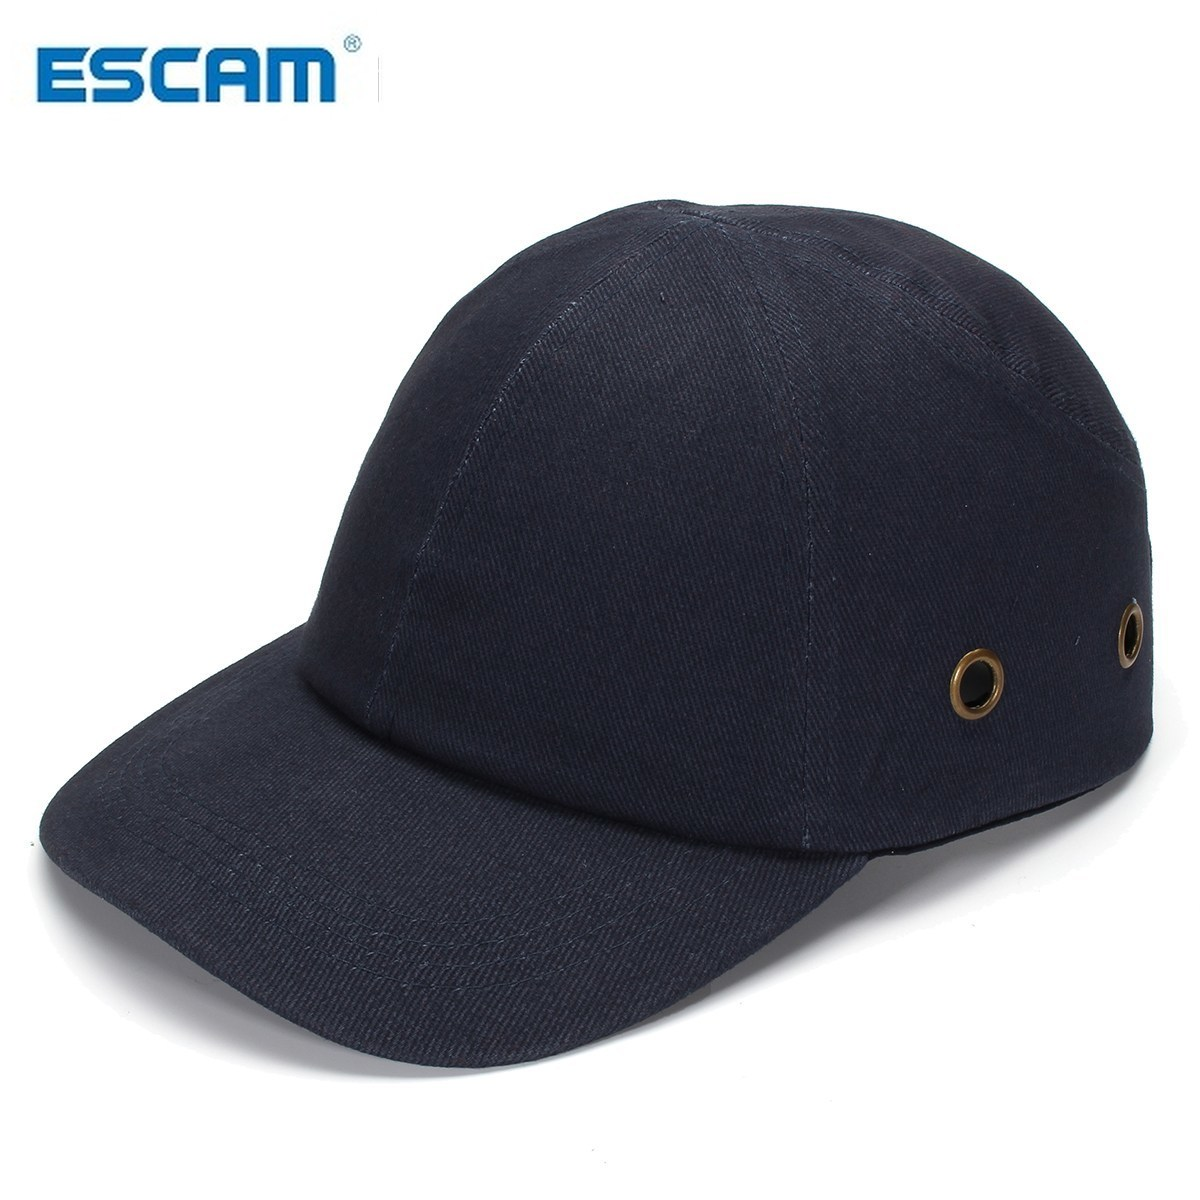 ESCAM Blue Baseball Bump Caps - Lightweight Safety Hard Hat Head Protection Caps Workplace Safety Helmet